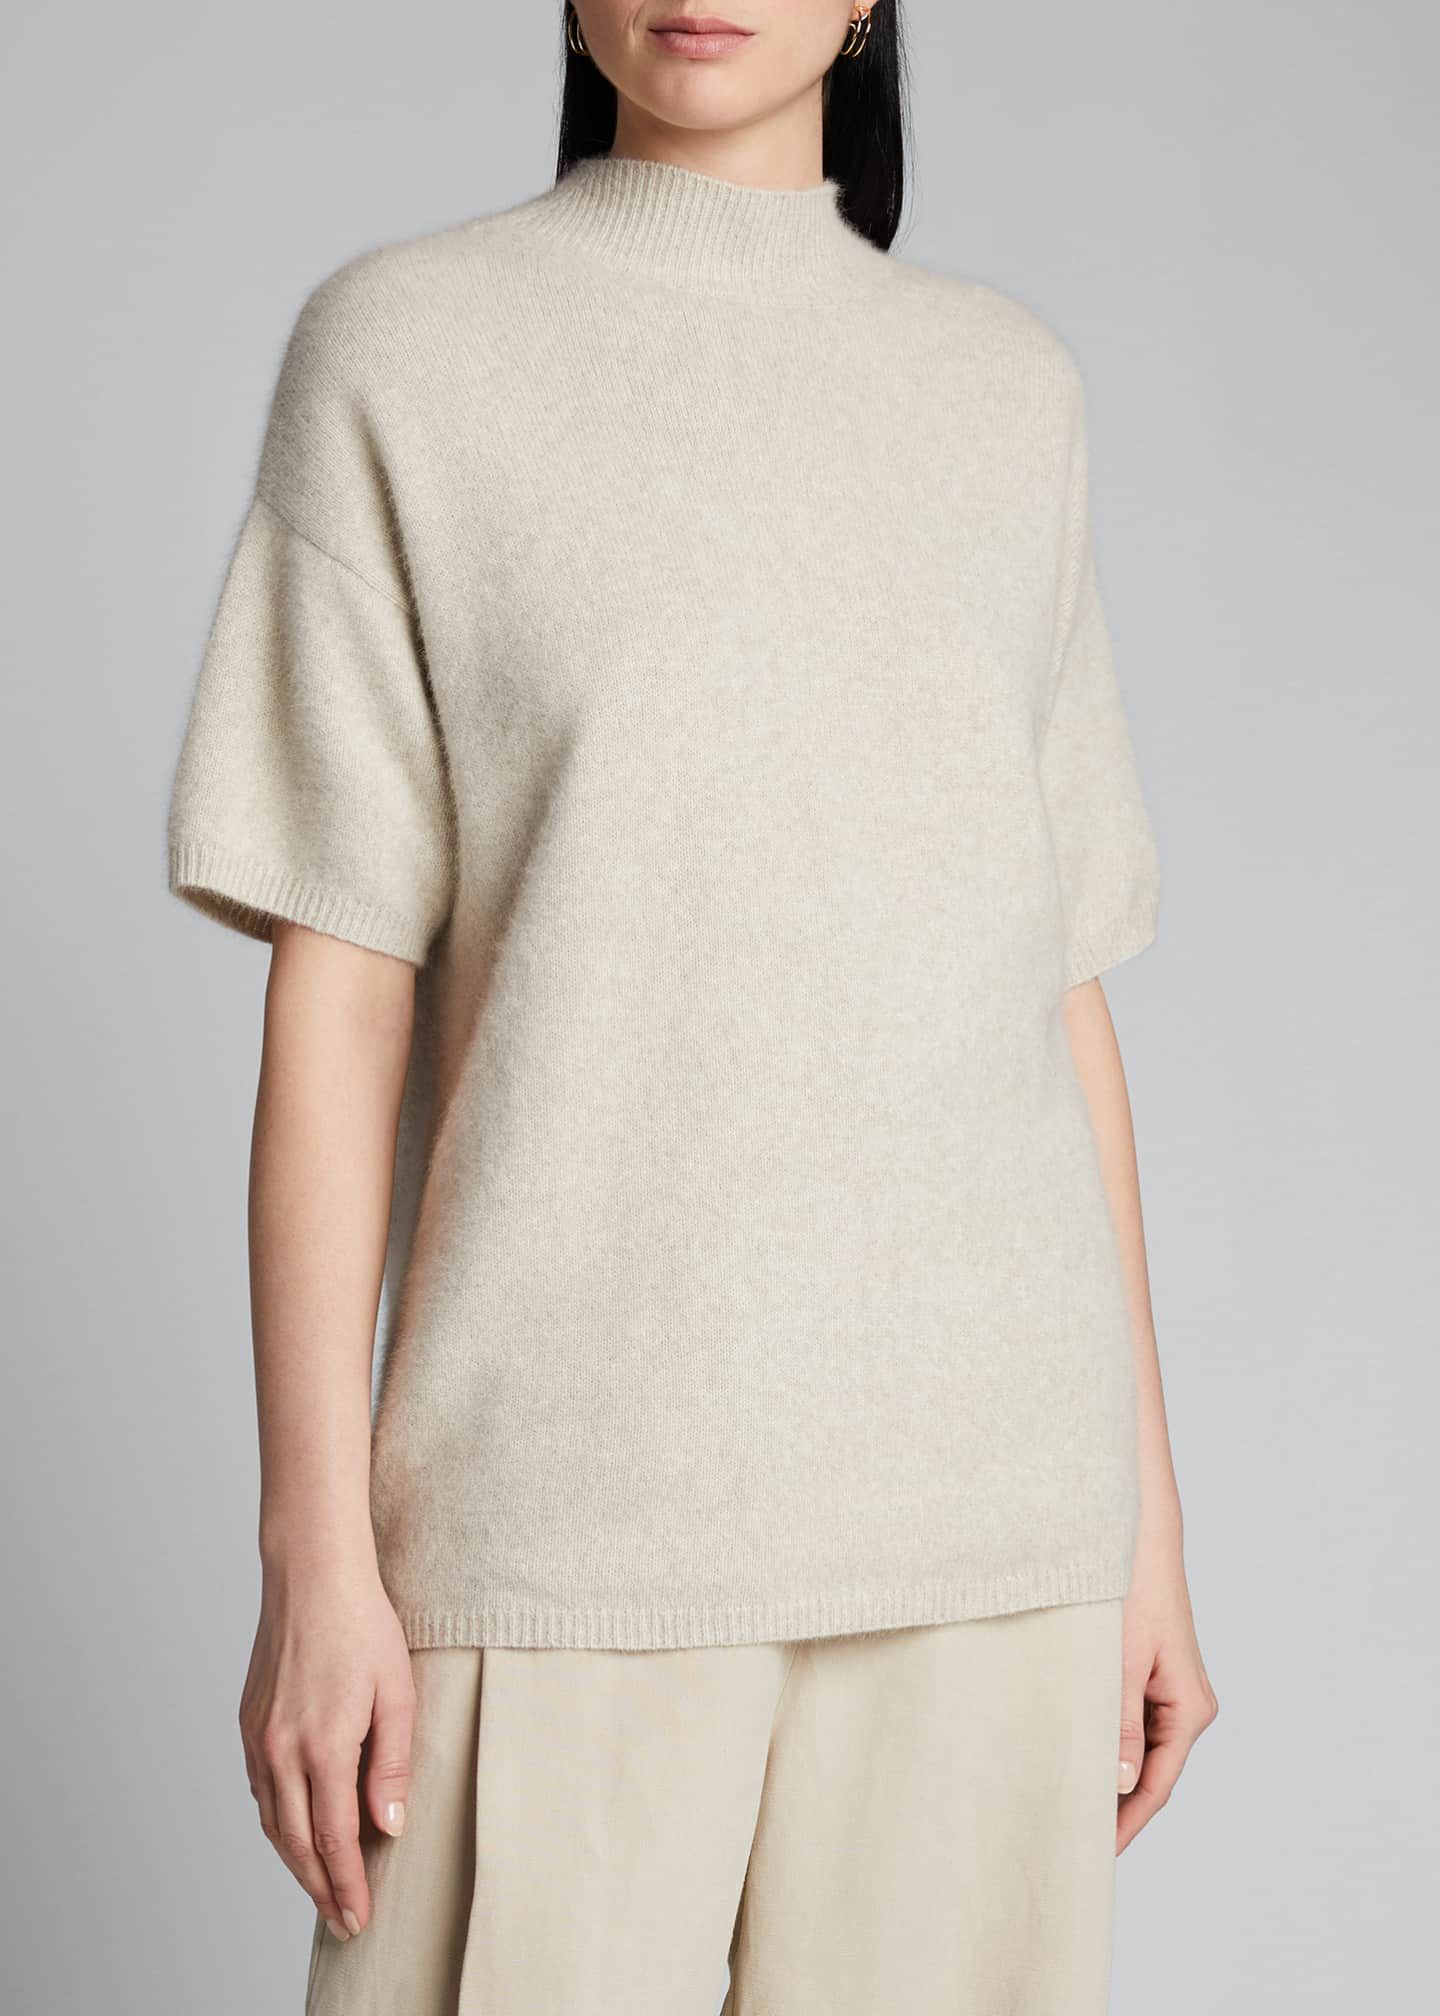 Image 3 of 5: Wool Mock-Neck Slouchy Sweater